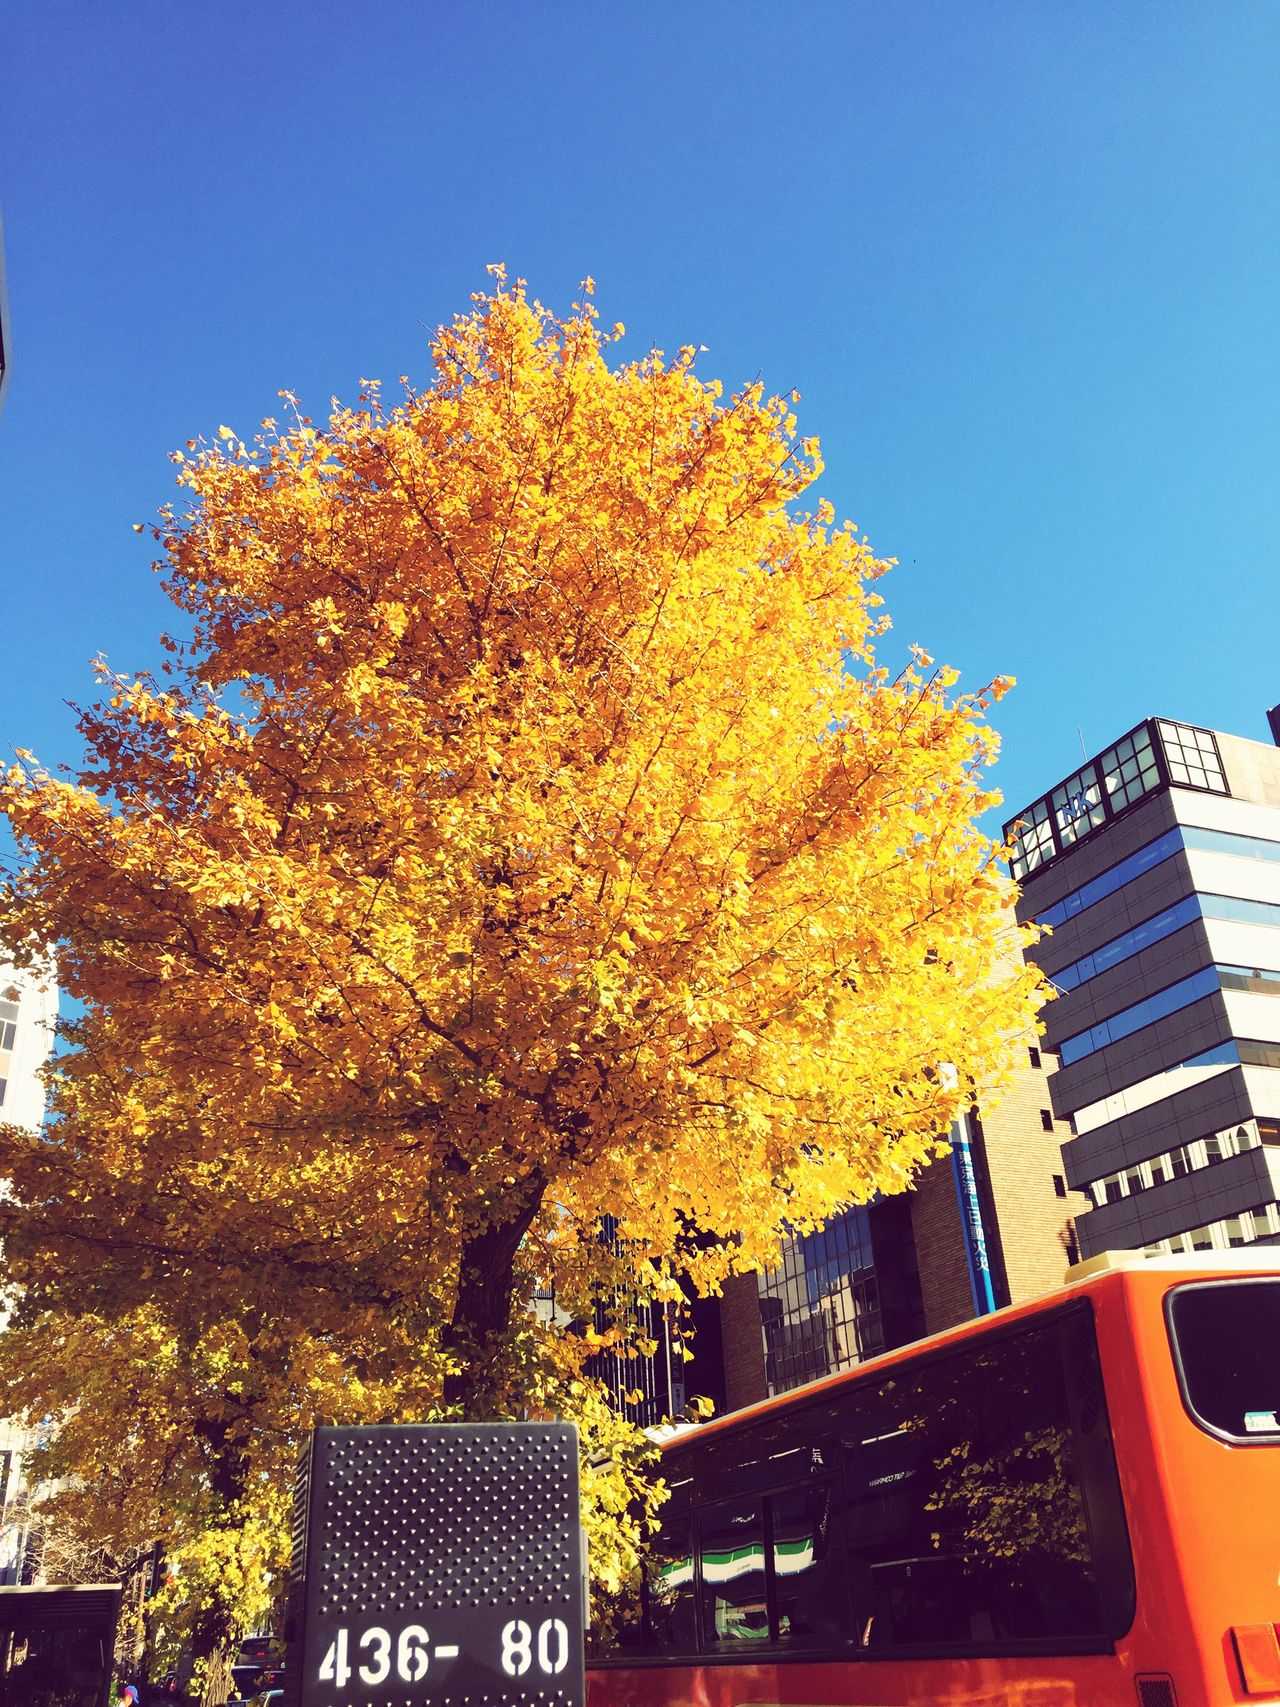 Building Exterior Tree Built Structure Architecture City Clear Sky Change Autumn Low Angle View Outdoors No People Day Sky Skyscraper Nature Outdoor Photography Street Photo Autumn Freshness Tree Clear Sky Yellow Beauty In Nature Nature Japanese Town